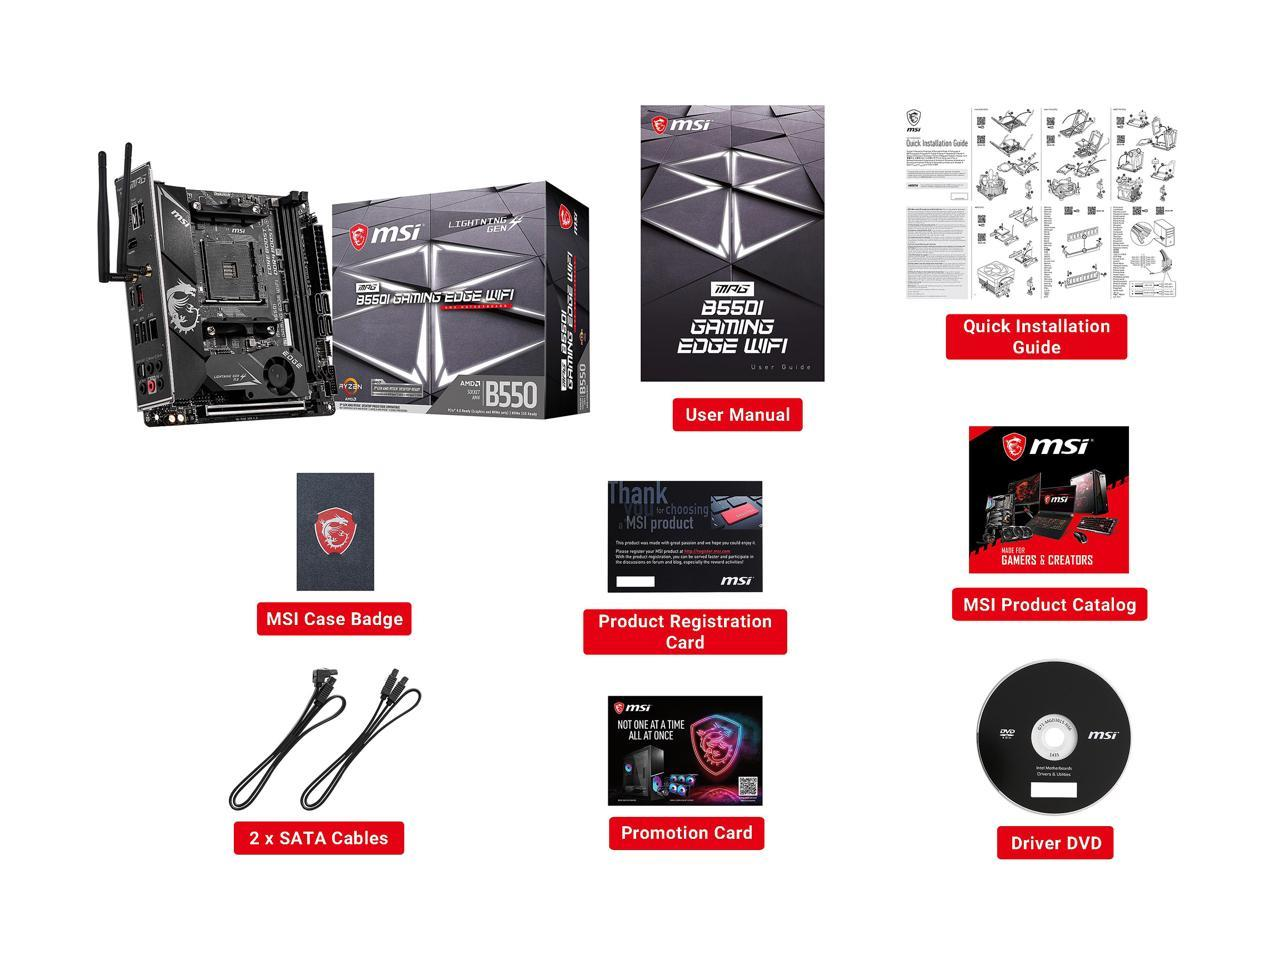 MSI - Geforce RTX 3060 Ti VENTUS 2X OC BV - 8GB GDDR6 - PCI Express 4.0 -  + MSI B550I GAMING EDGE MOBO BUNDLE